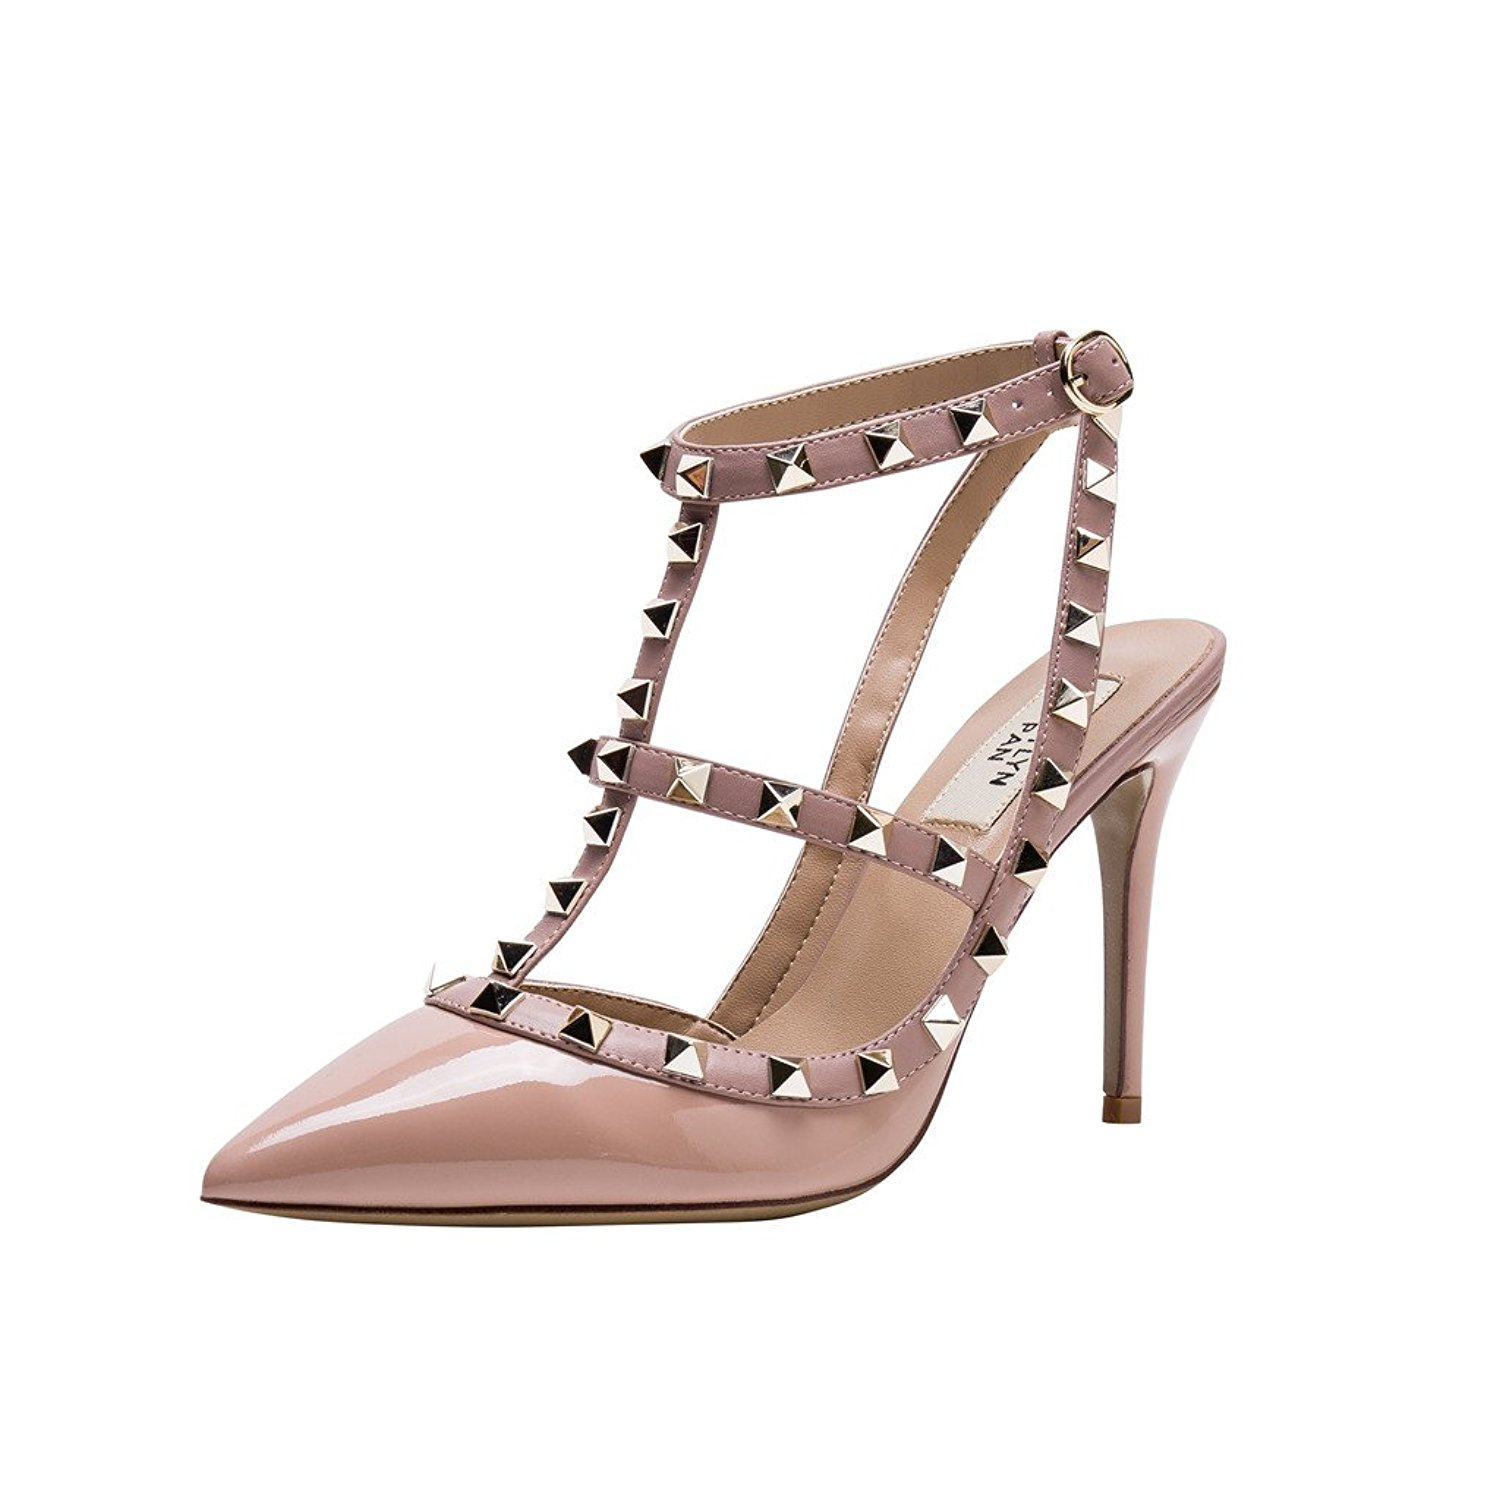 dbb6c16b3c8f2 Get Quotations · Kaitlyn Pan Pointed Toe Studded Slingback High Heel  Leather Pumps